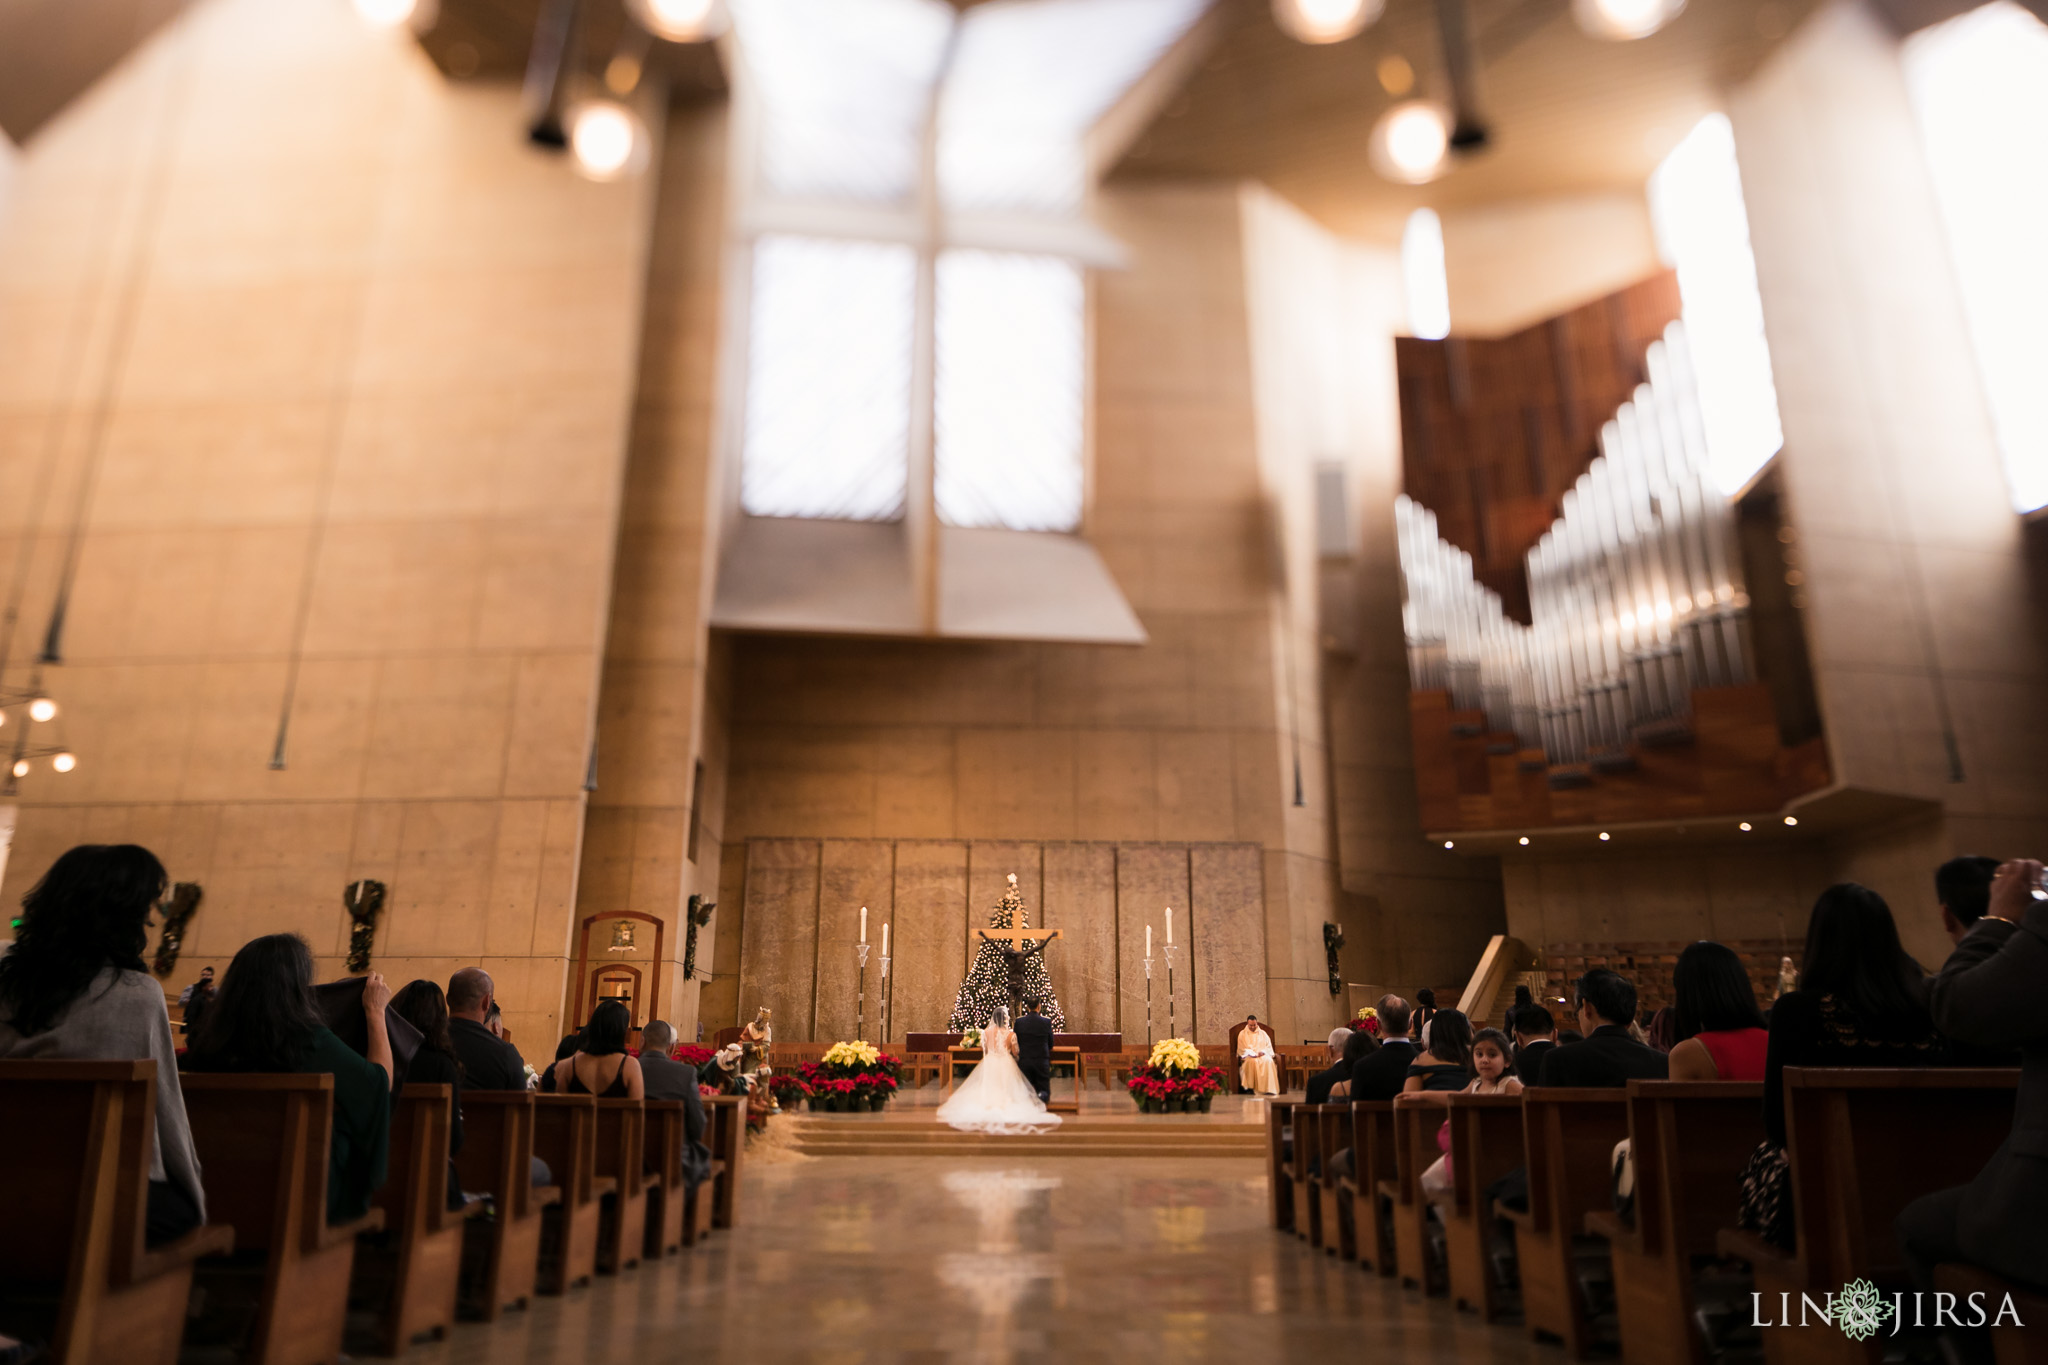 20 cathedral of our lady of angels wedding ceremony photography